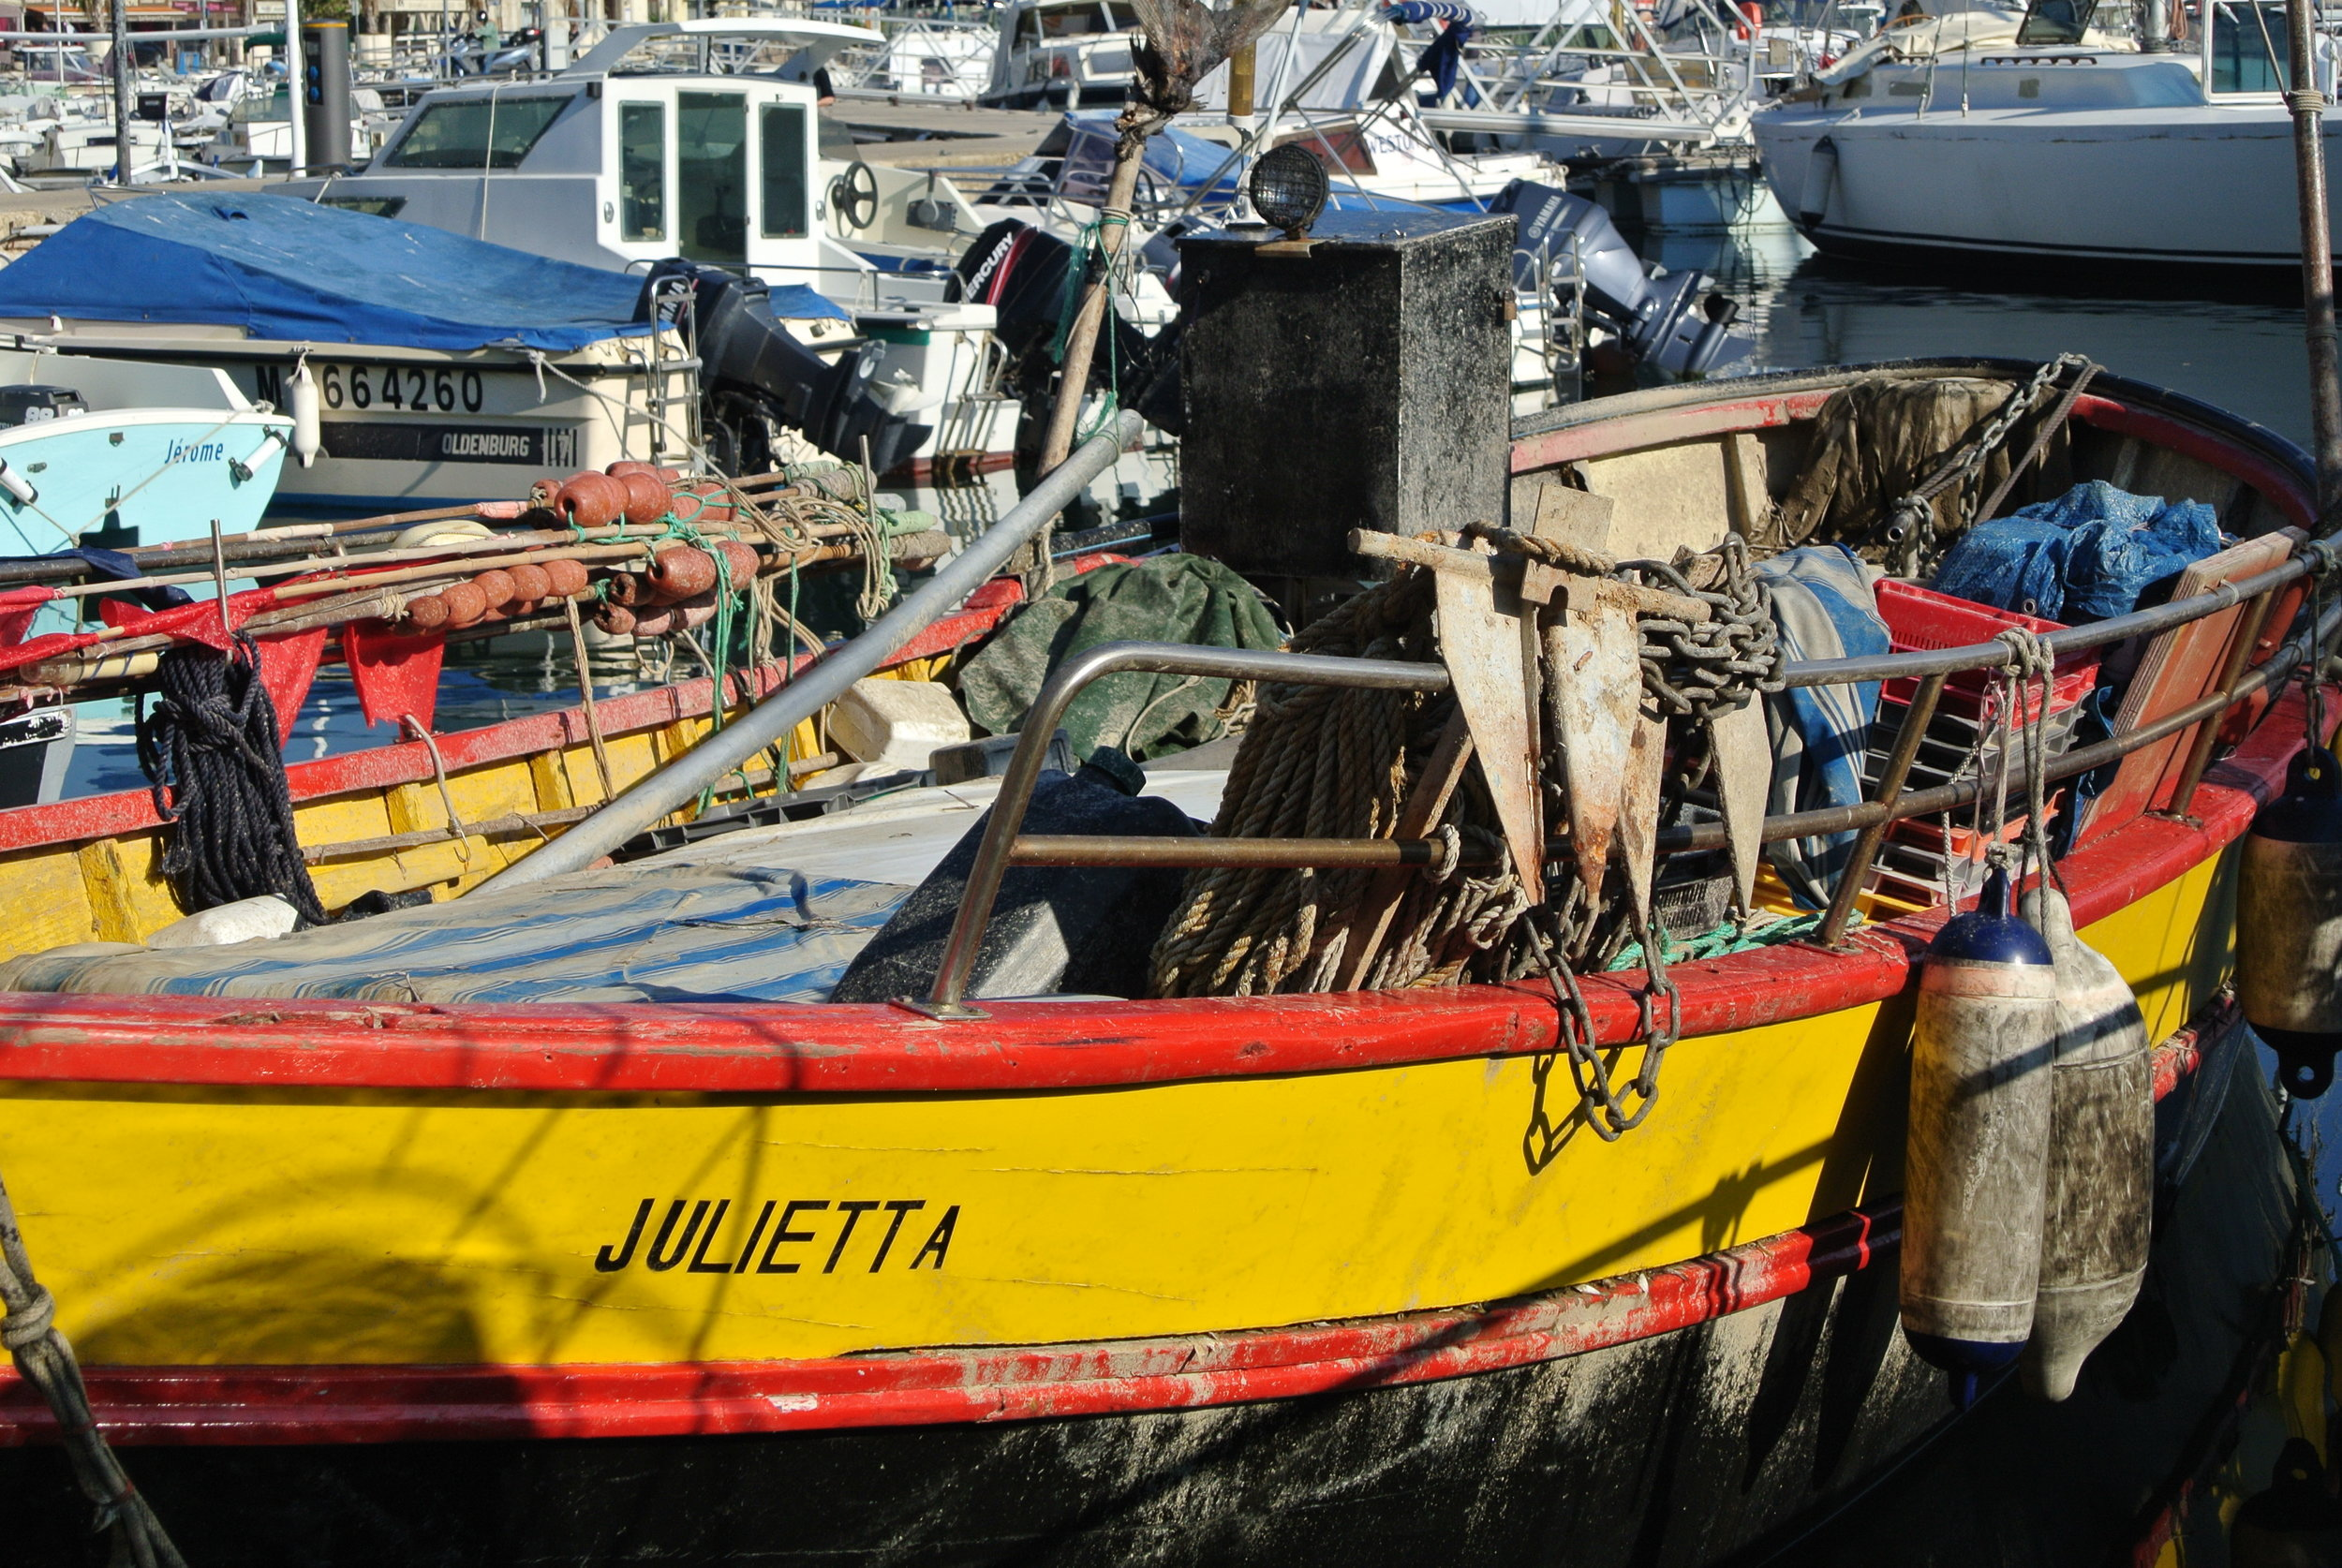 Fishing boats line the harbor at La Ciotat